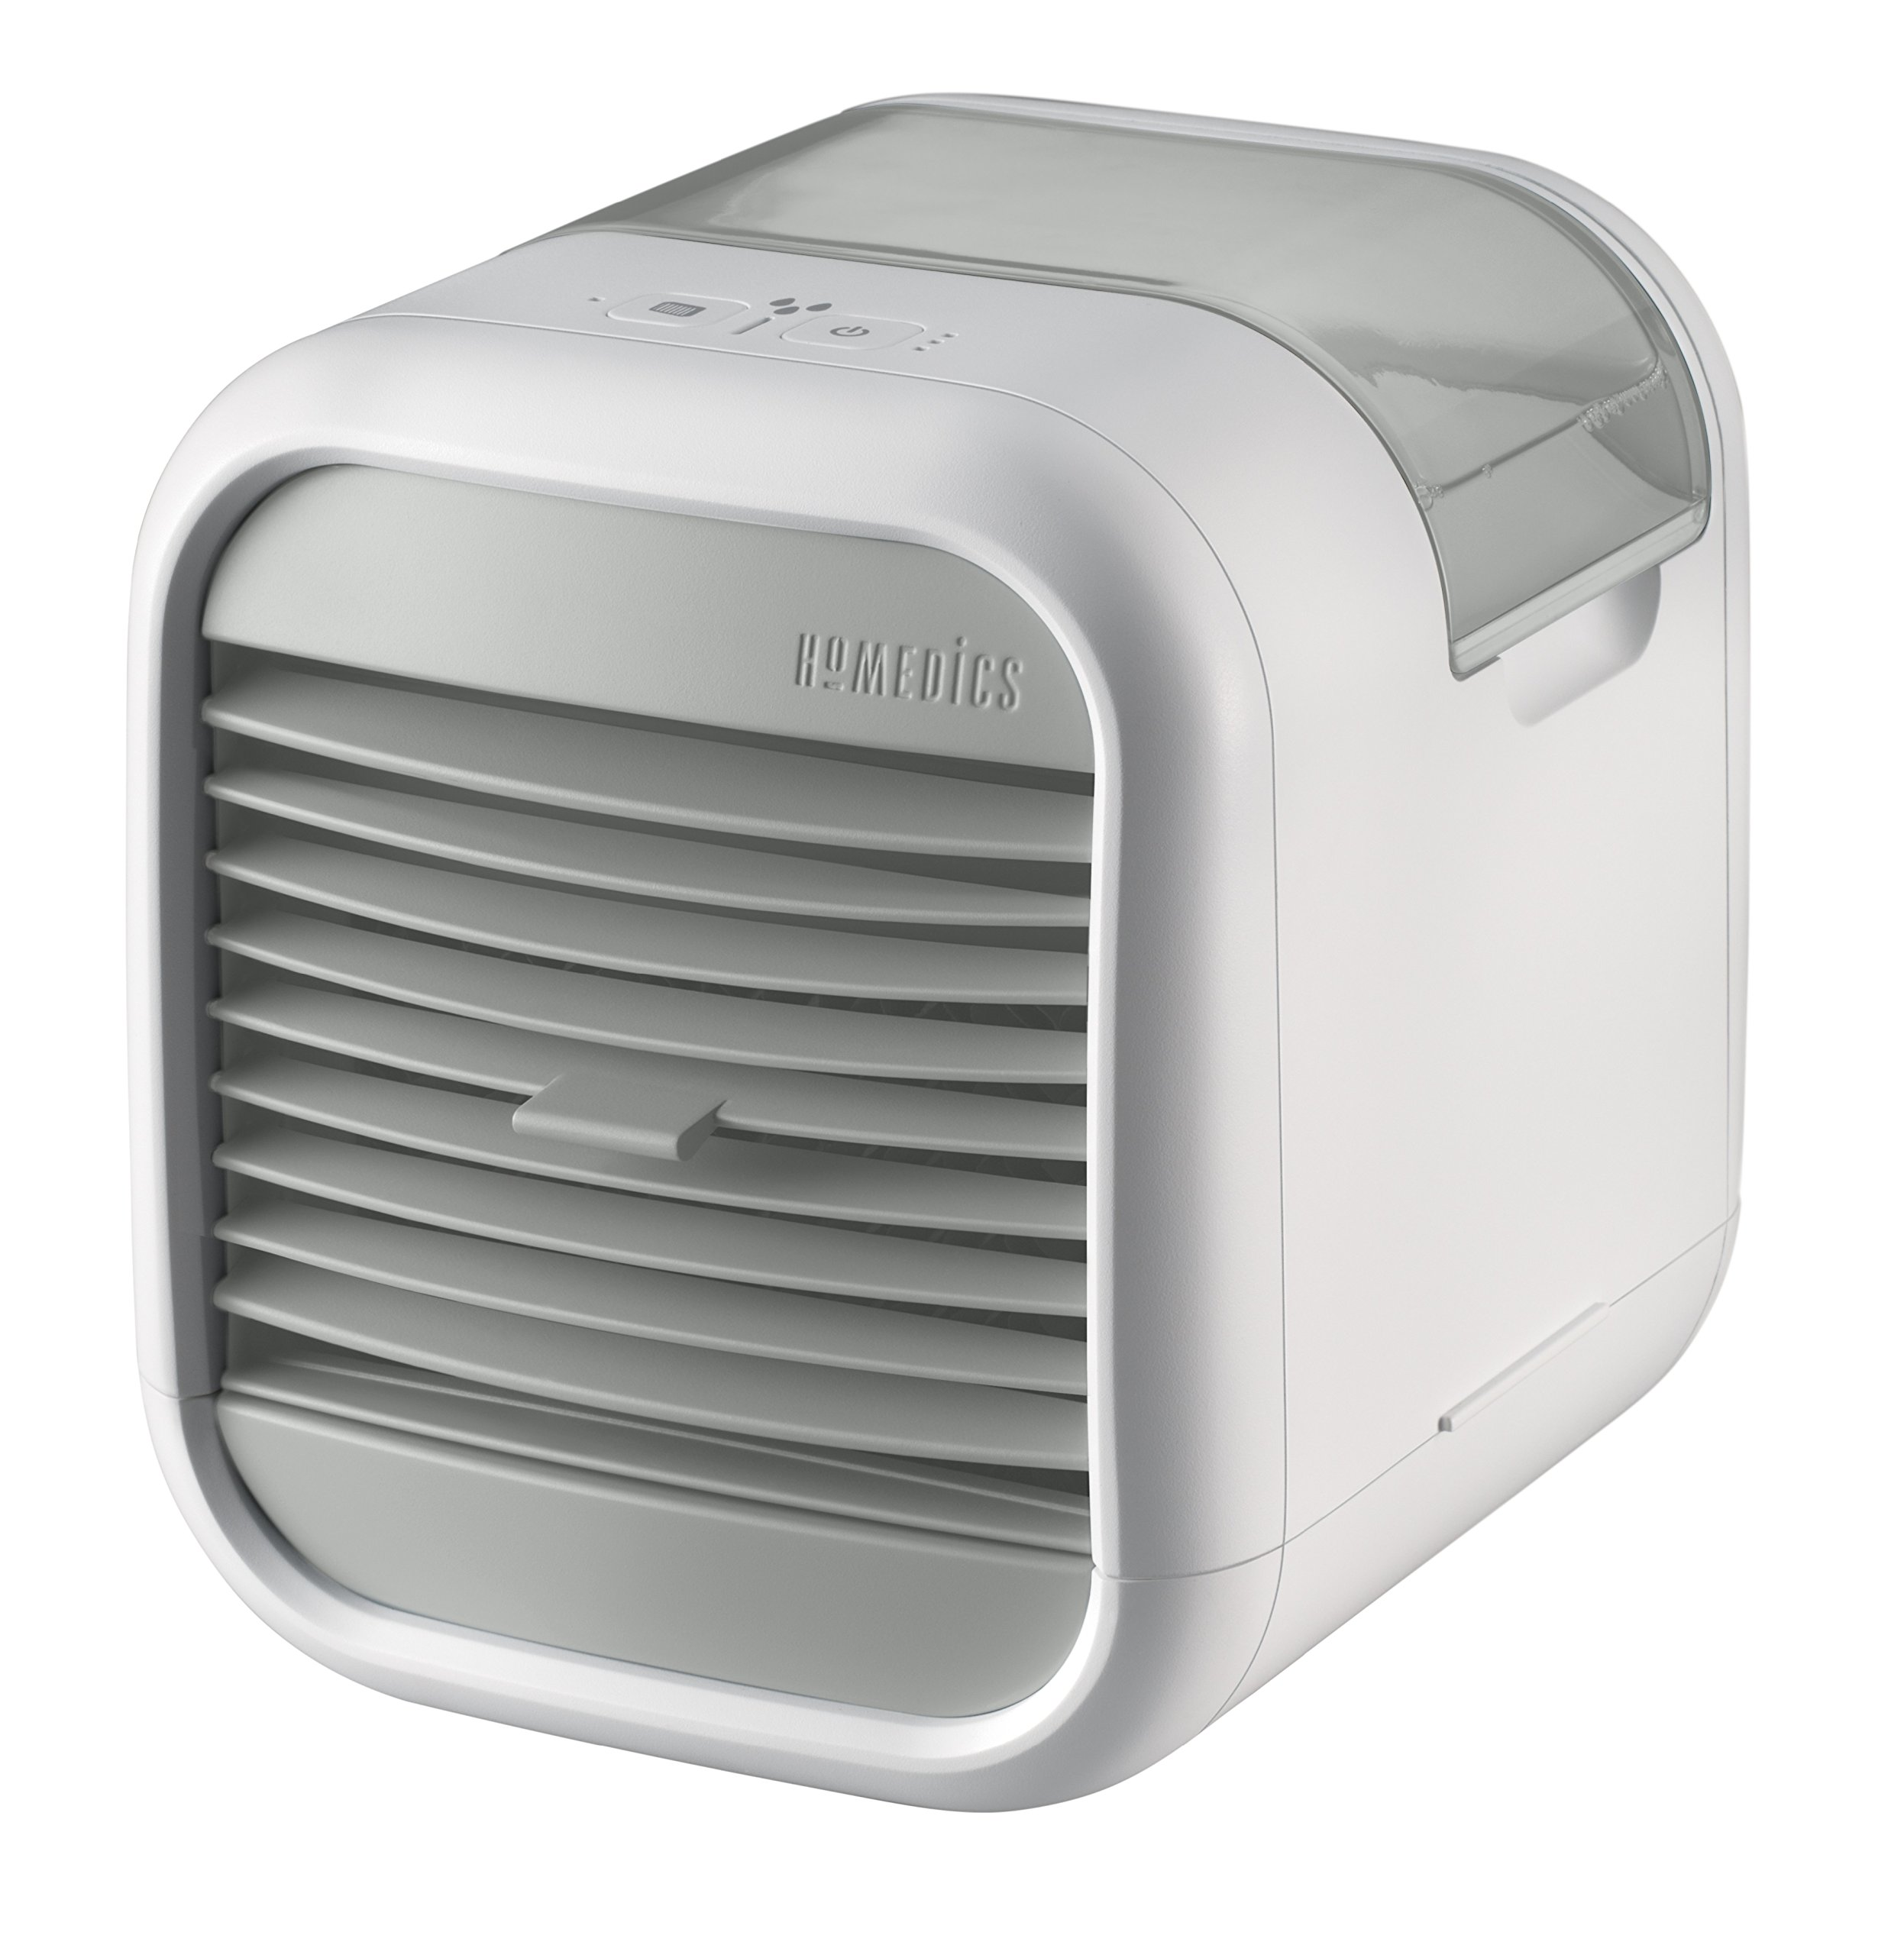 HoMedics MyChill Plus Personal Space Cooler, 6-Foot Cooling Area, Three Fan Speeds, Clean Tank Technology, Add Water, Plugs into 110v Outlet, Perfect for Office, Dorm, Nightstand, PAC-30 Black